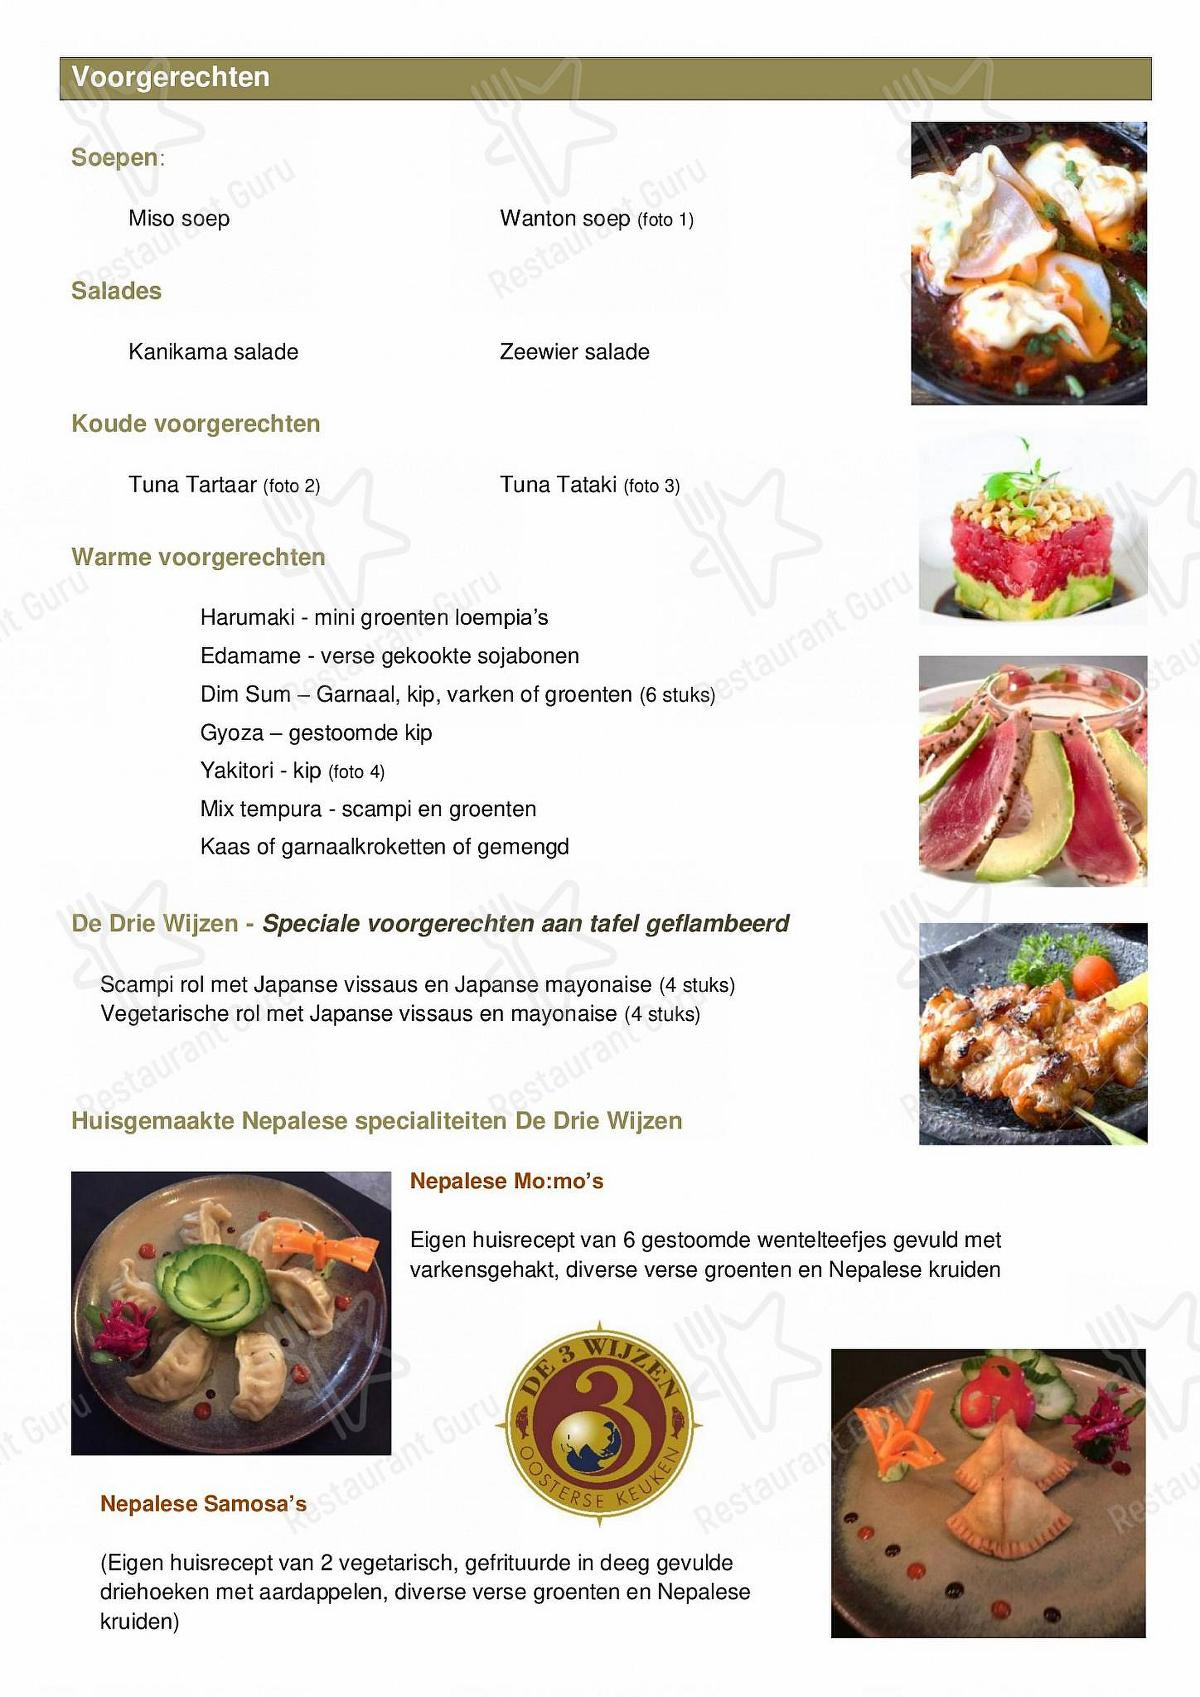 De 3 Wijzen menu - meals and drinks